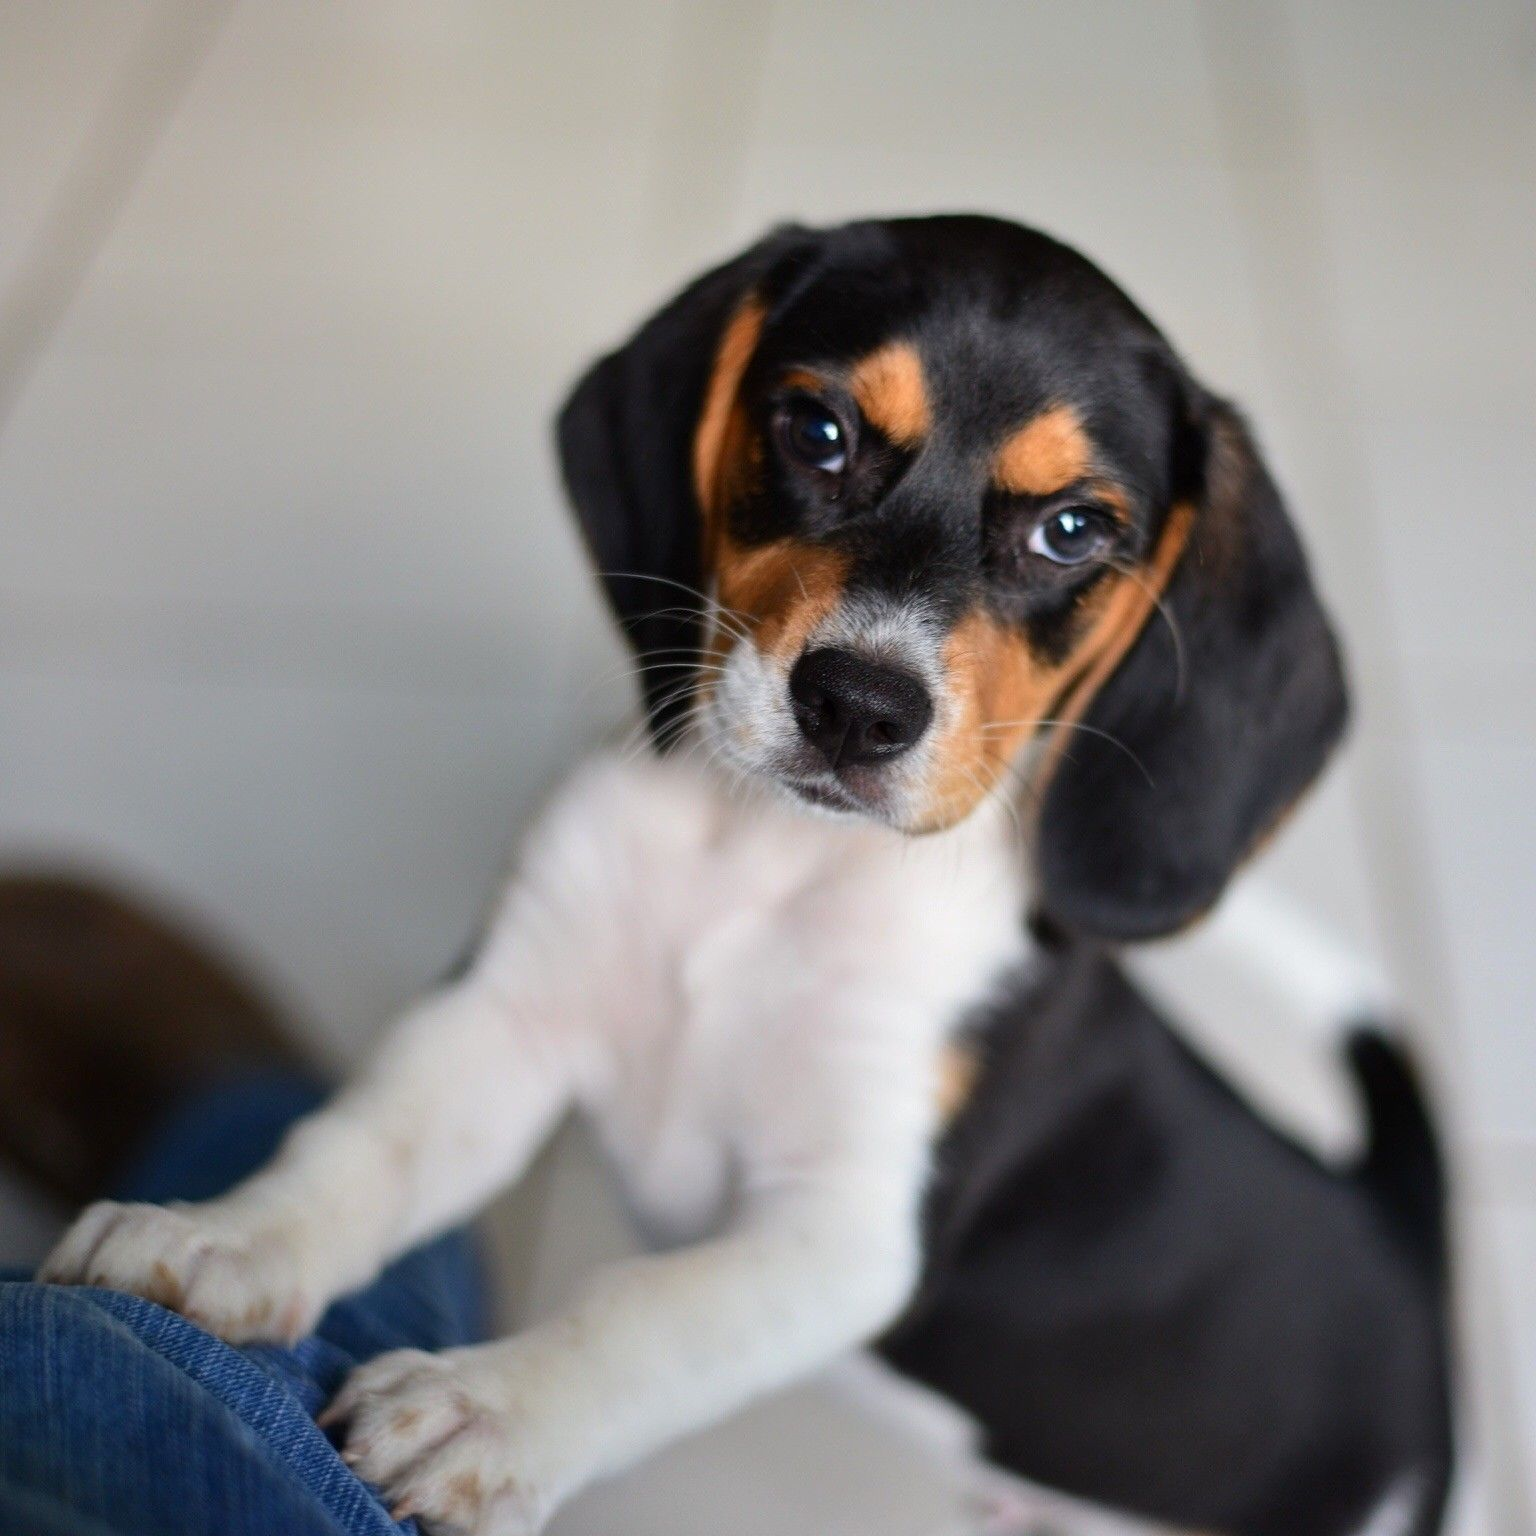 22 Photos of beagle puppies that will make your heart stop